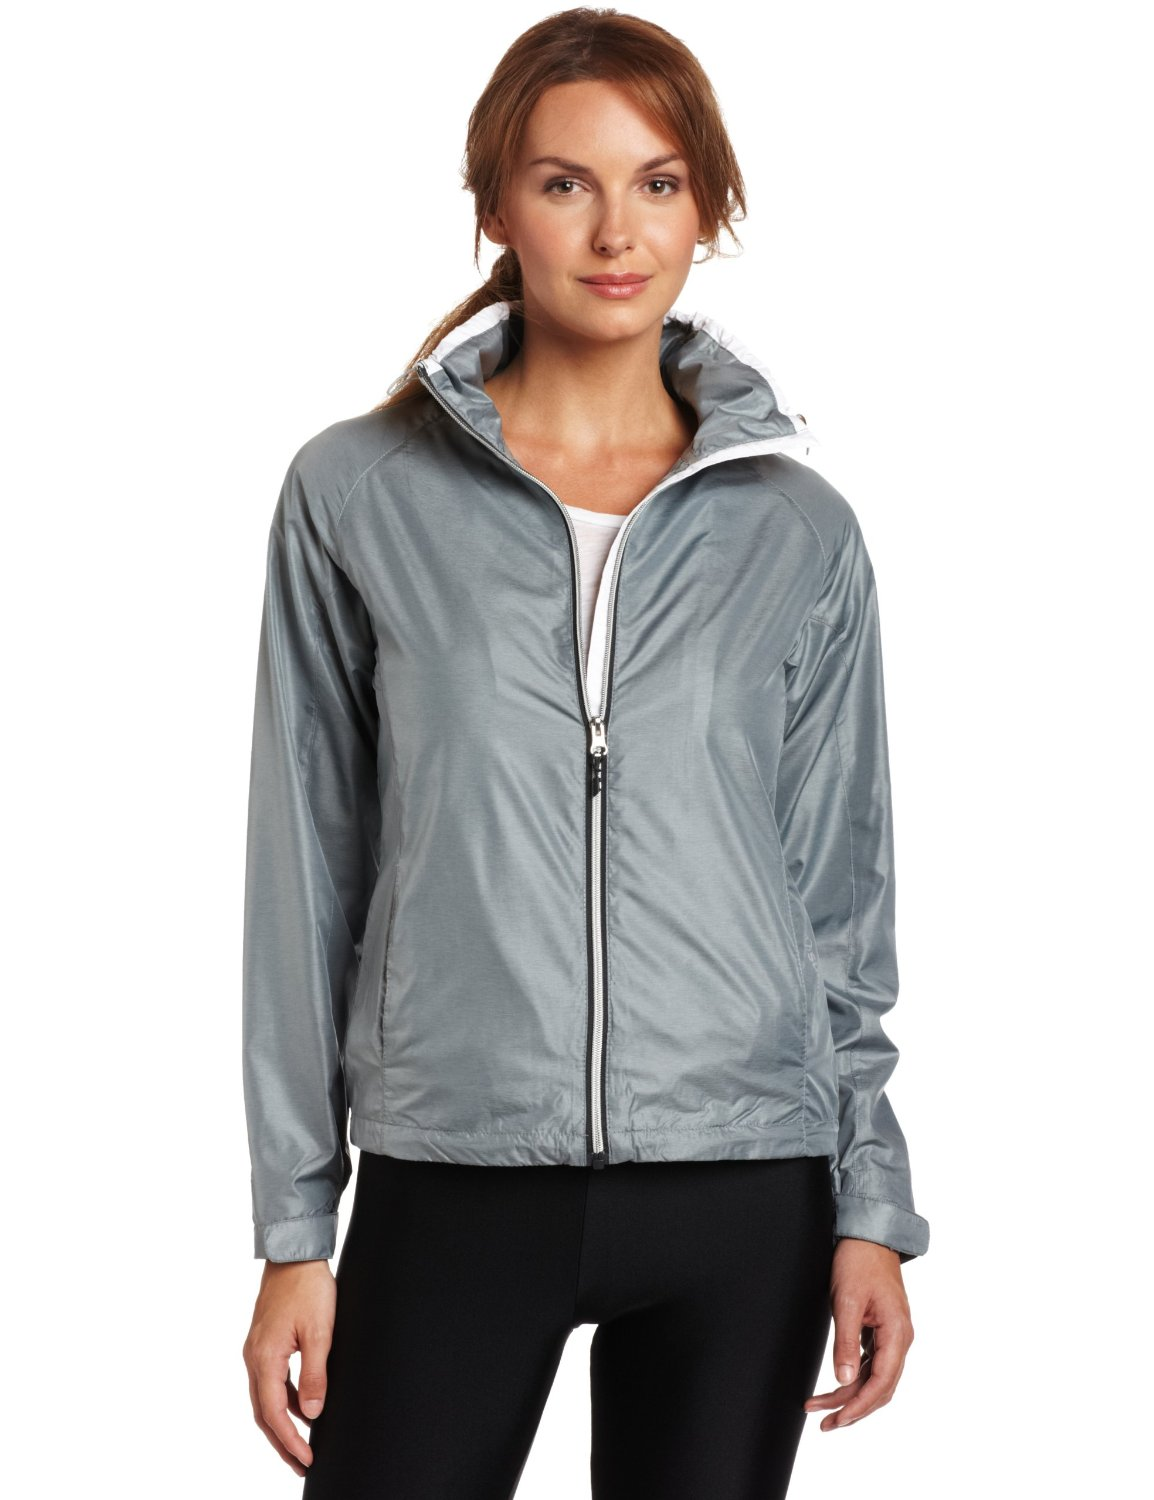 Womens Sunice Bella Full Zip Golf Jackets